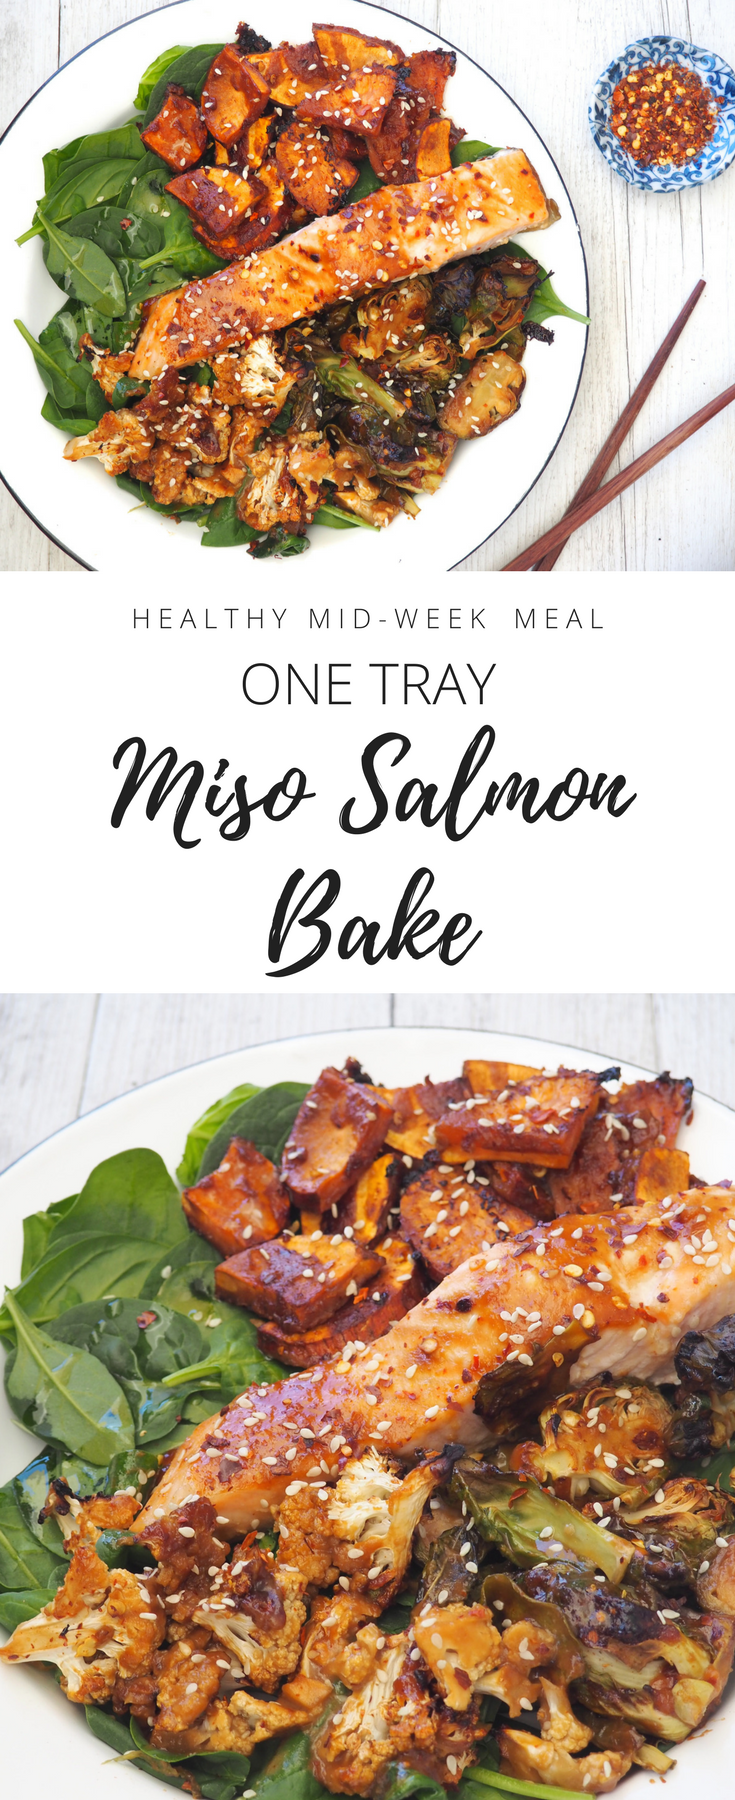 One tray Miso Salmon Bake - Healthy recipe by nutritionist Lyndi Cohen.png